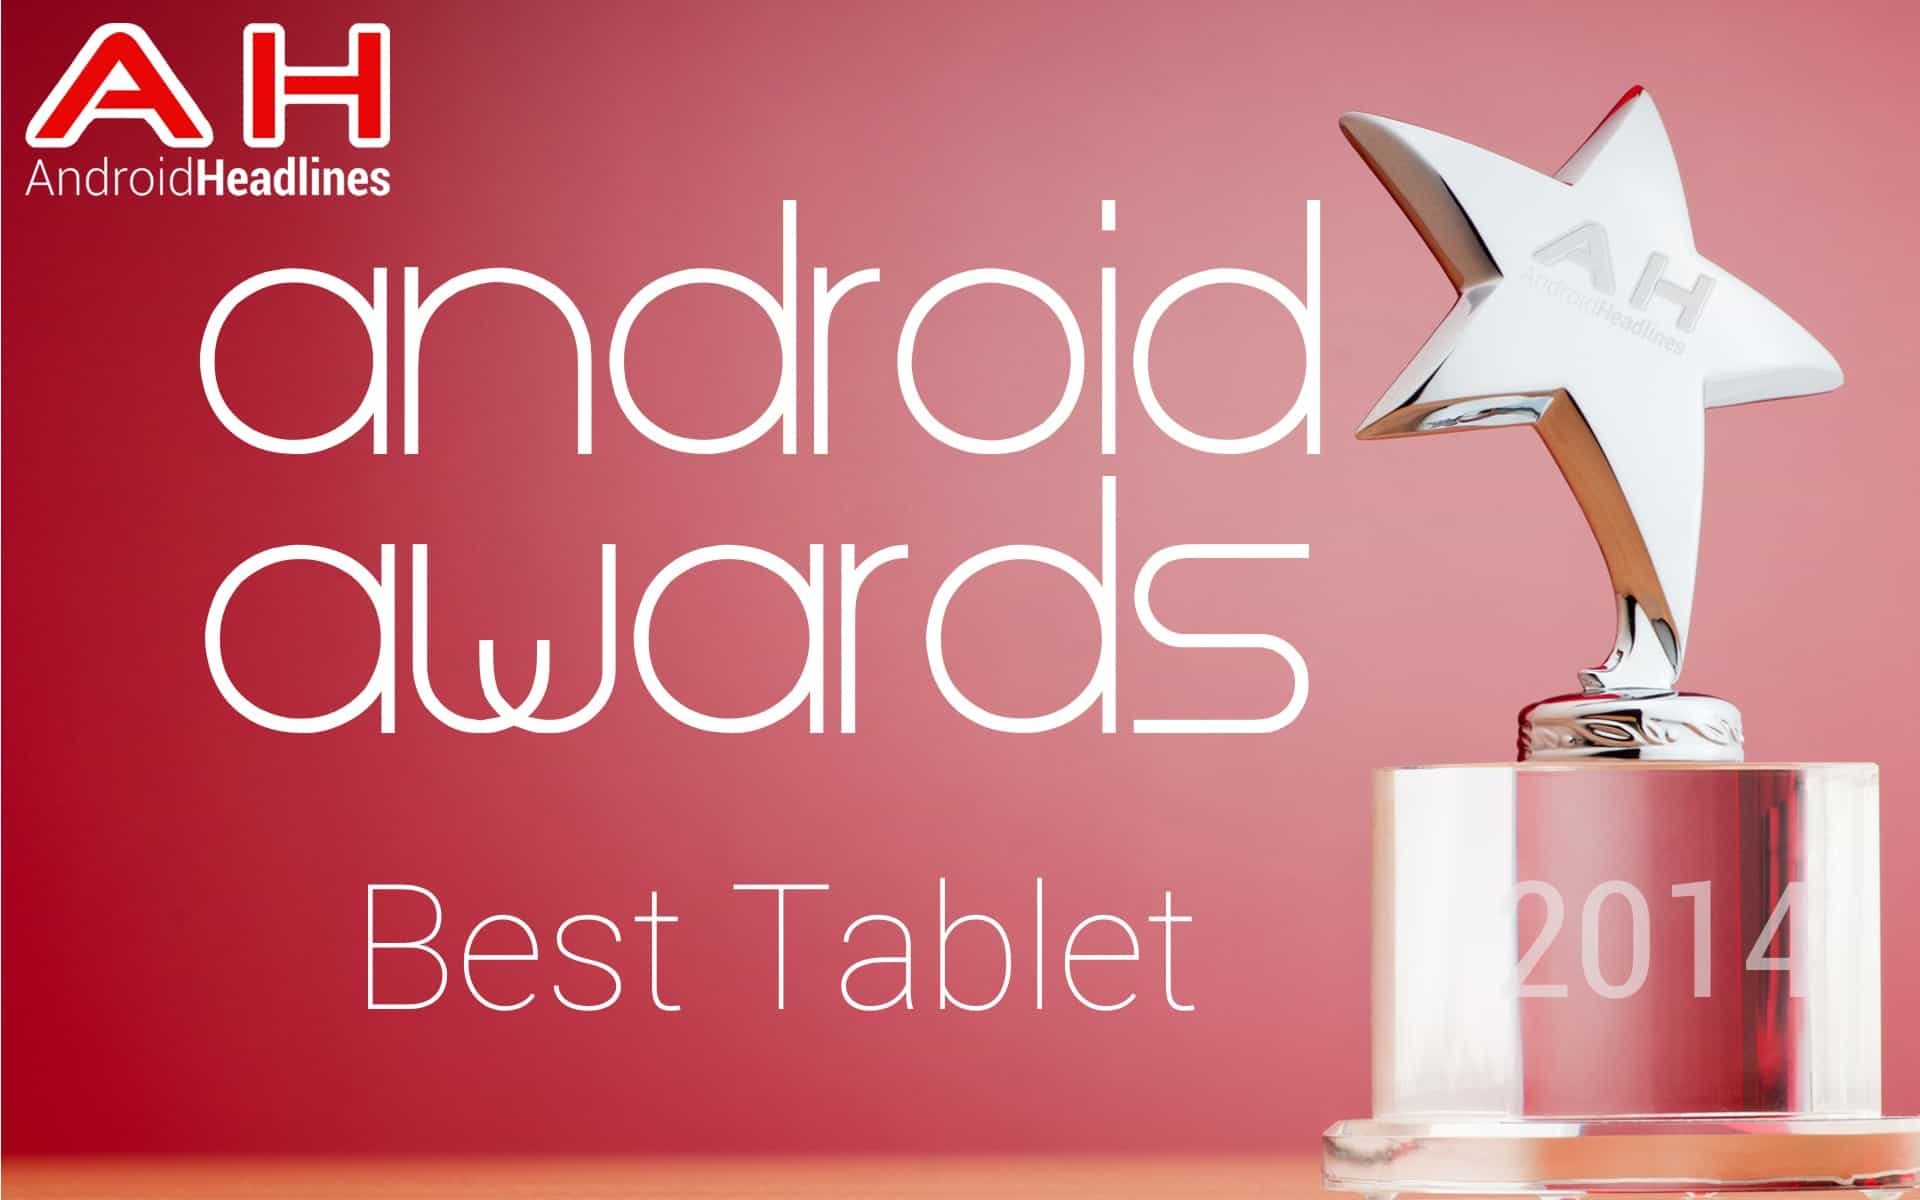 AH Awards 2014 Best Android Tablet of the year